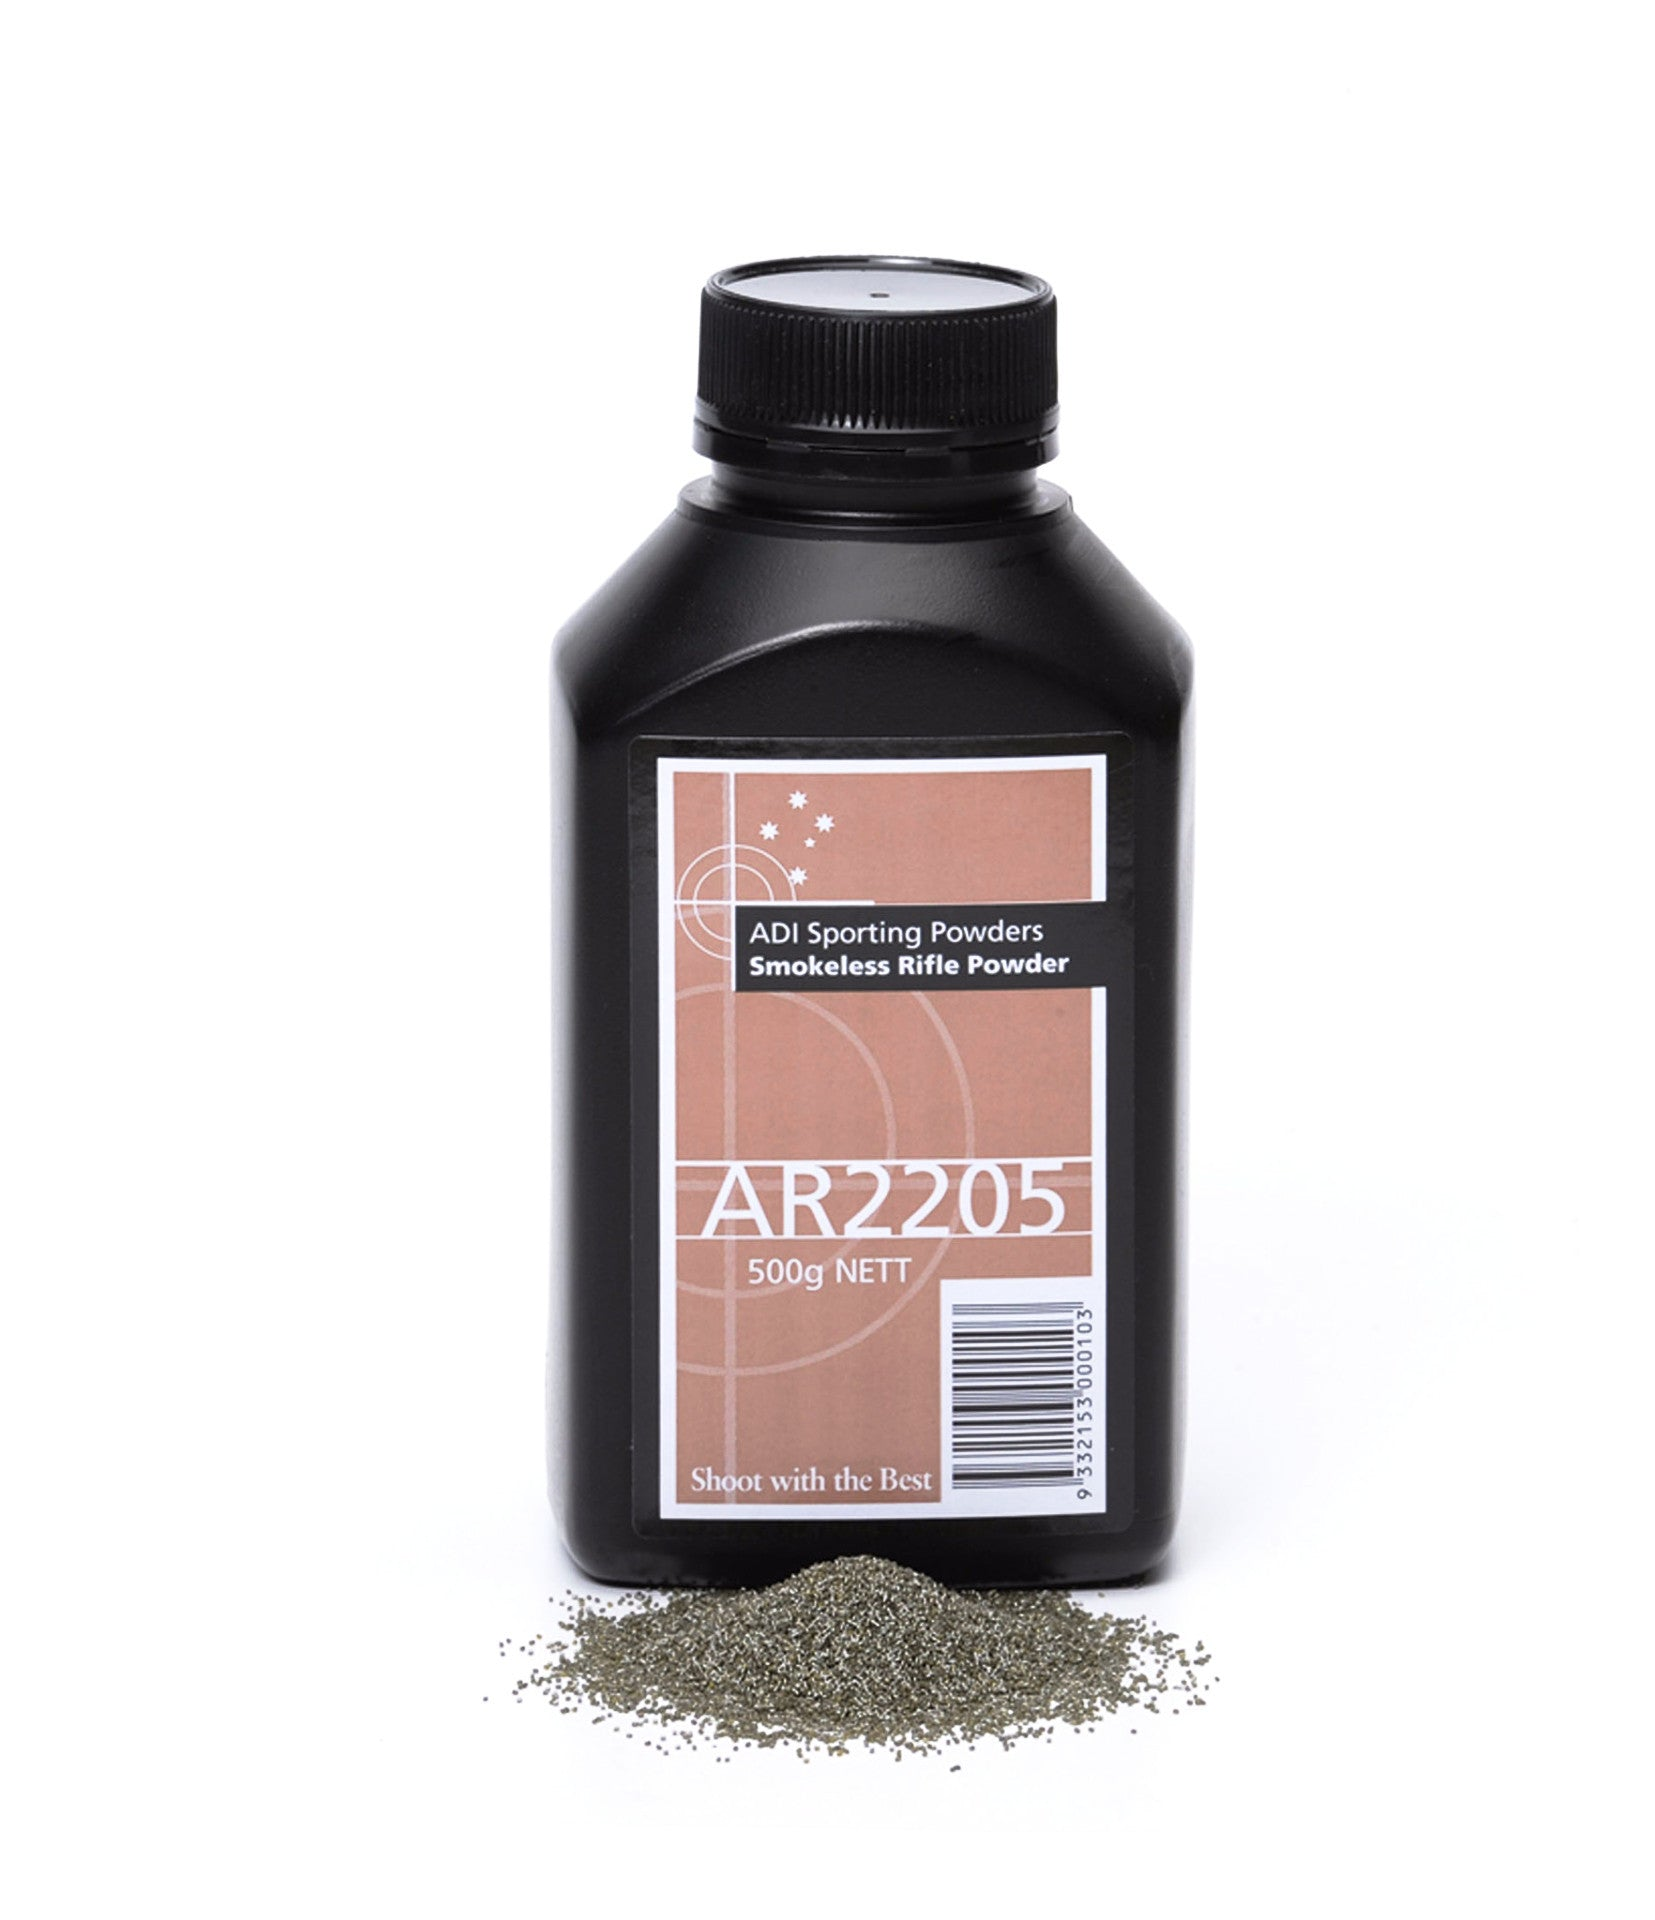 ADI Sporting Powders AR2205 (500g)